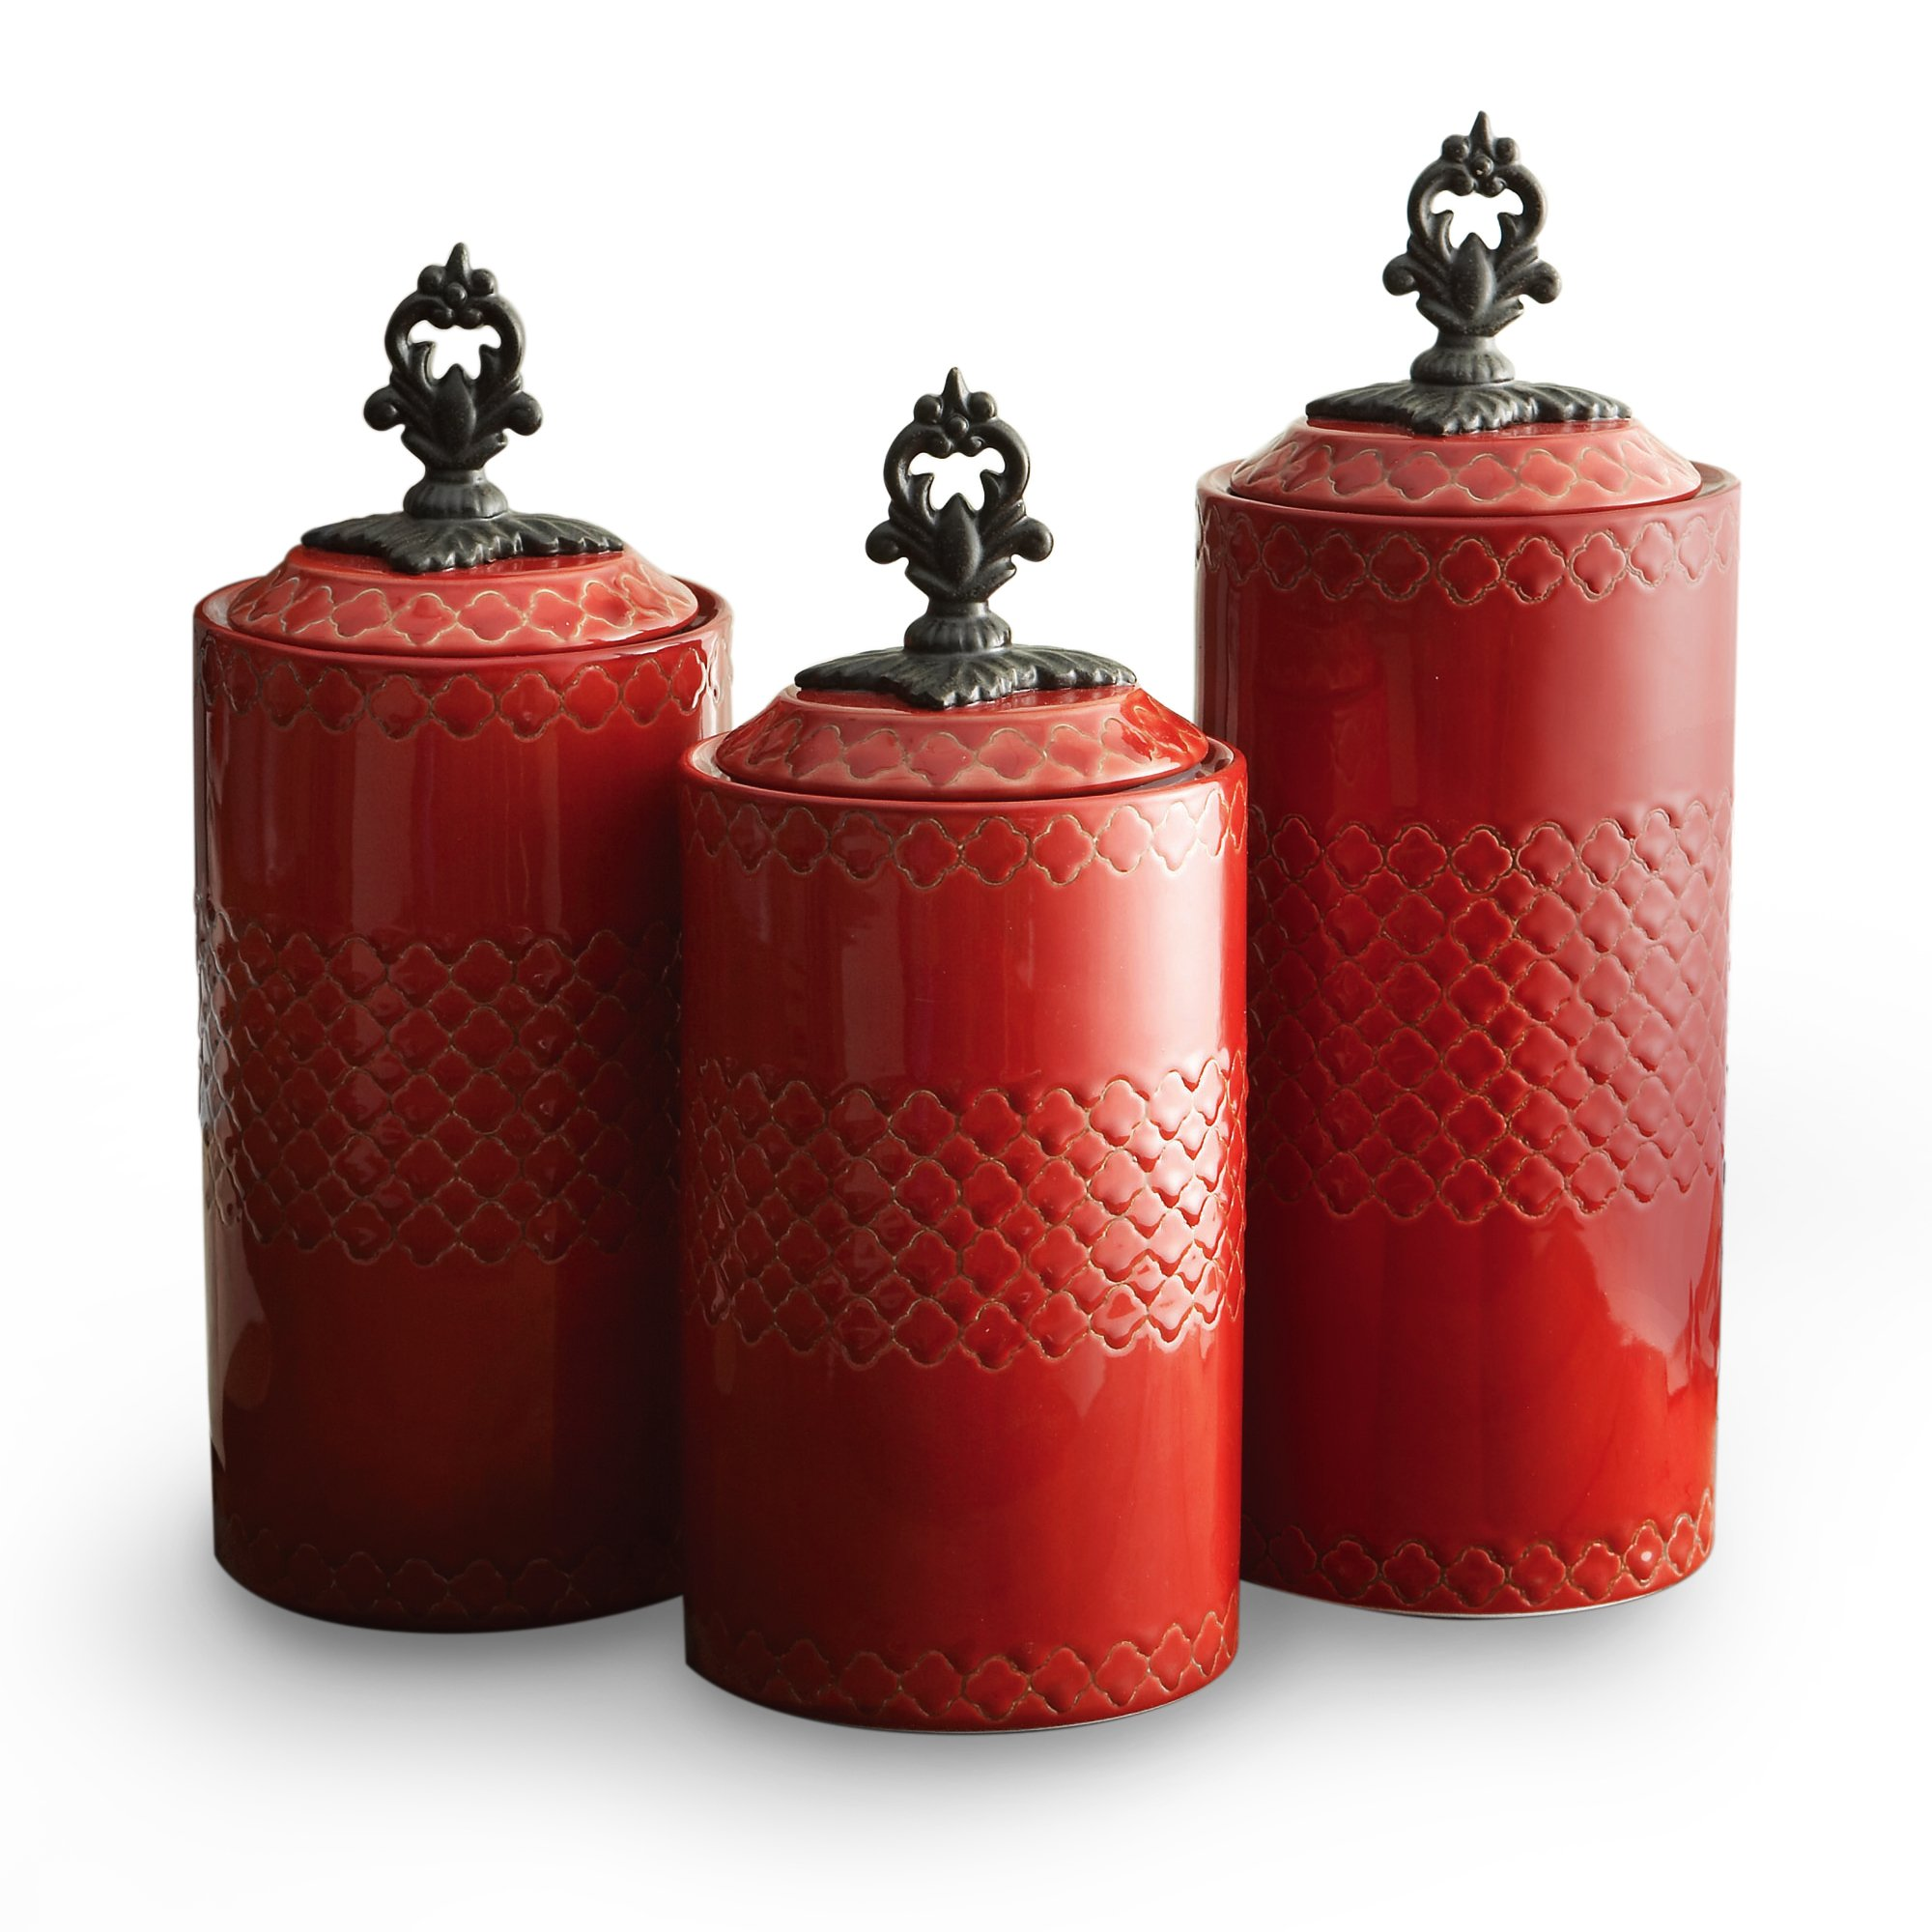 American Atelier Set of 3 ceramic Canisters-Red, Red